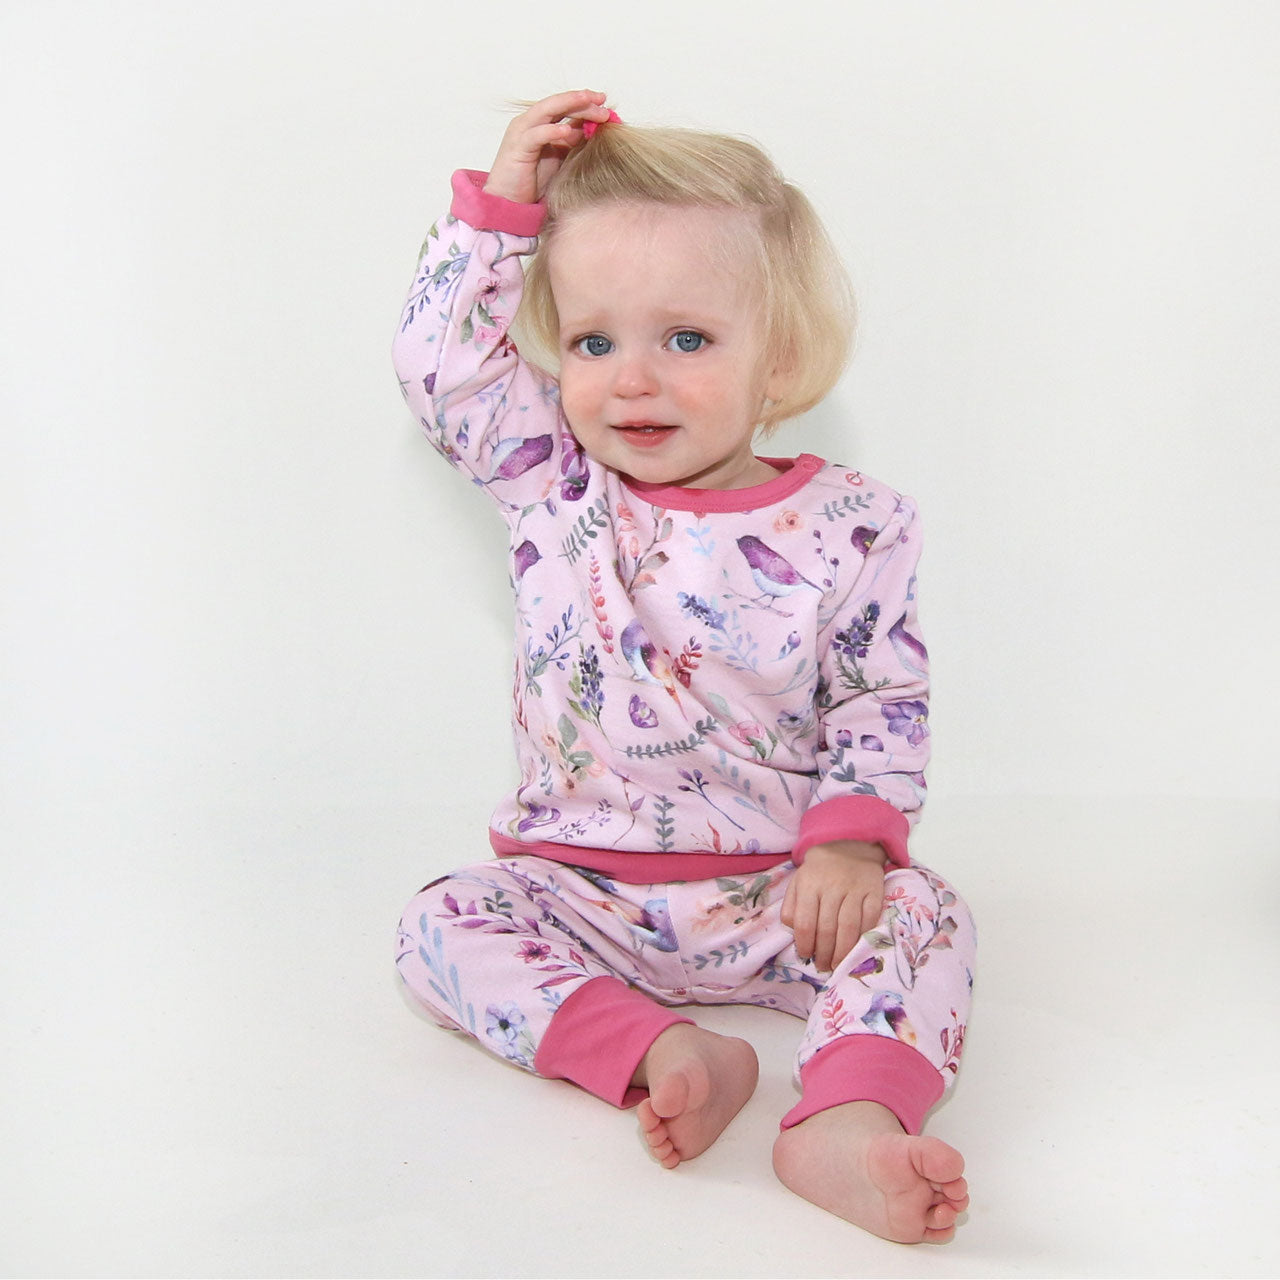 Baby Sweatshirt mit Blumendruck in hellrosé-soft pink von Enfant Terrible